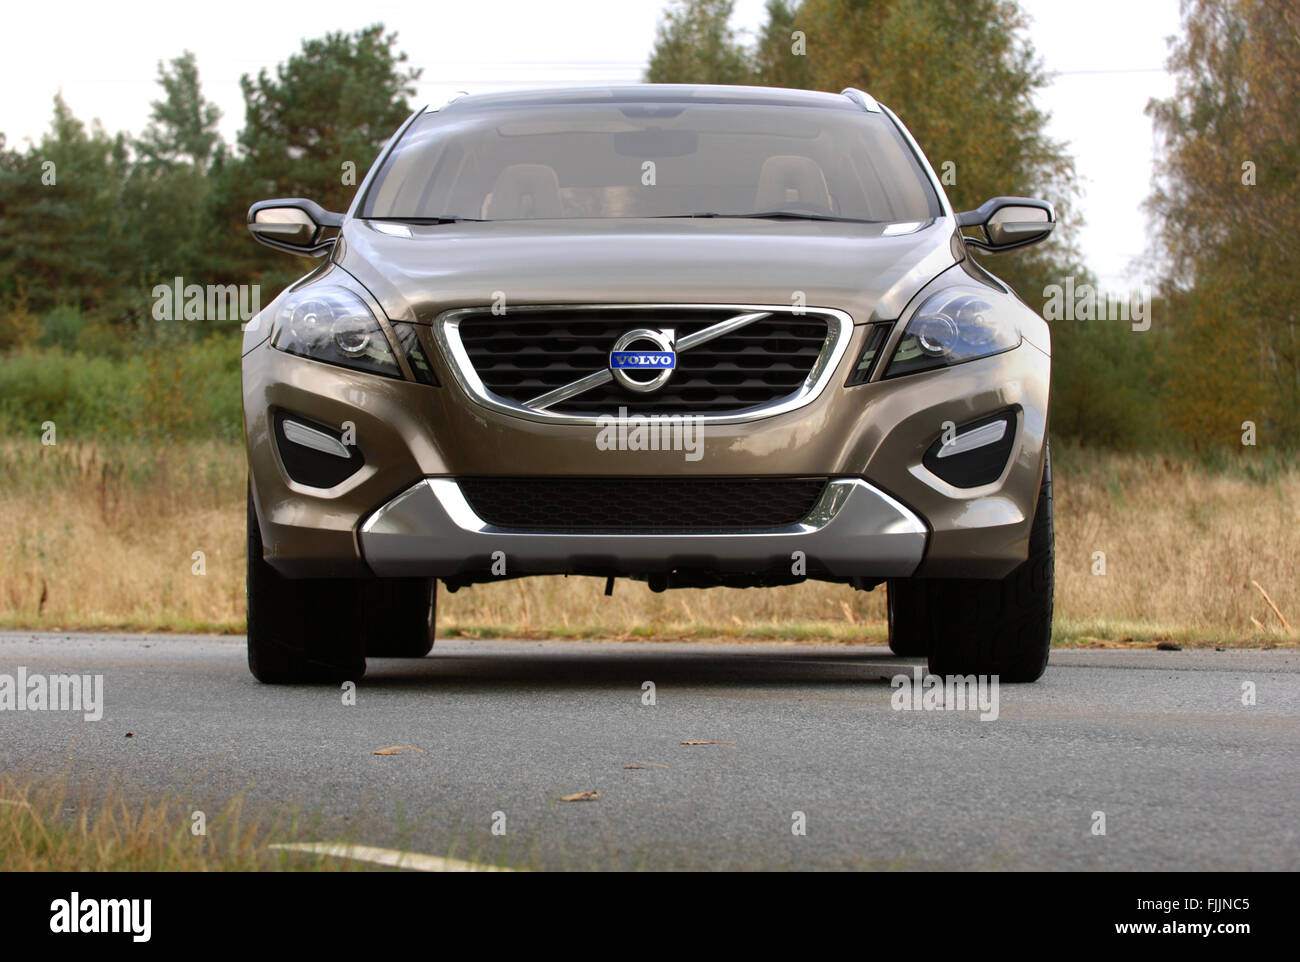 Volvo Xc Concept Car Which Became The Xc60 Shot On A Test